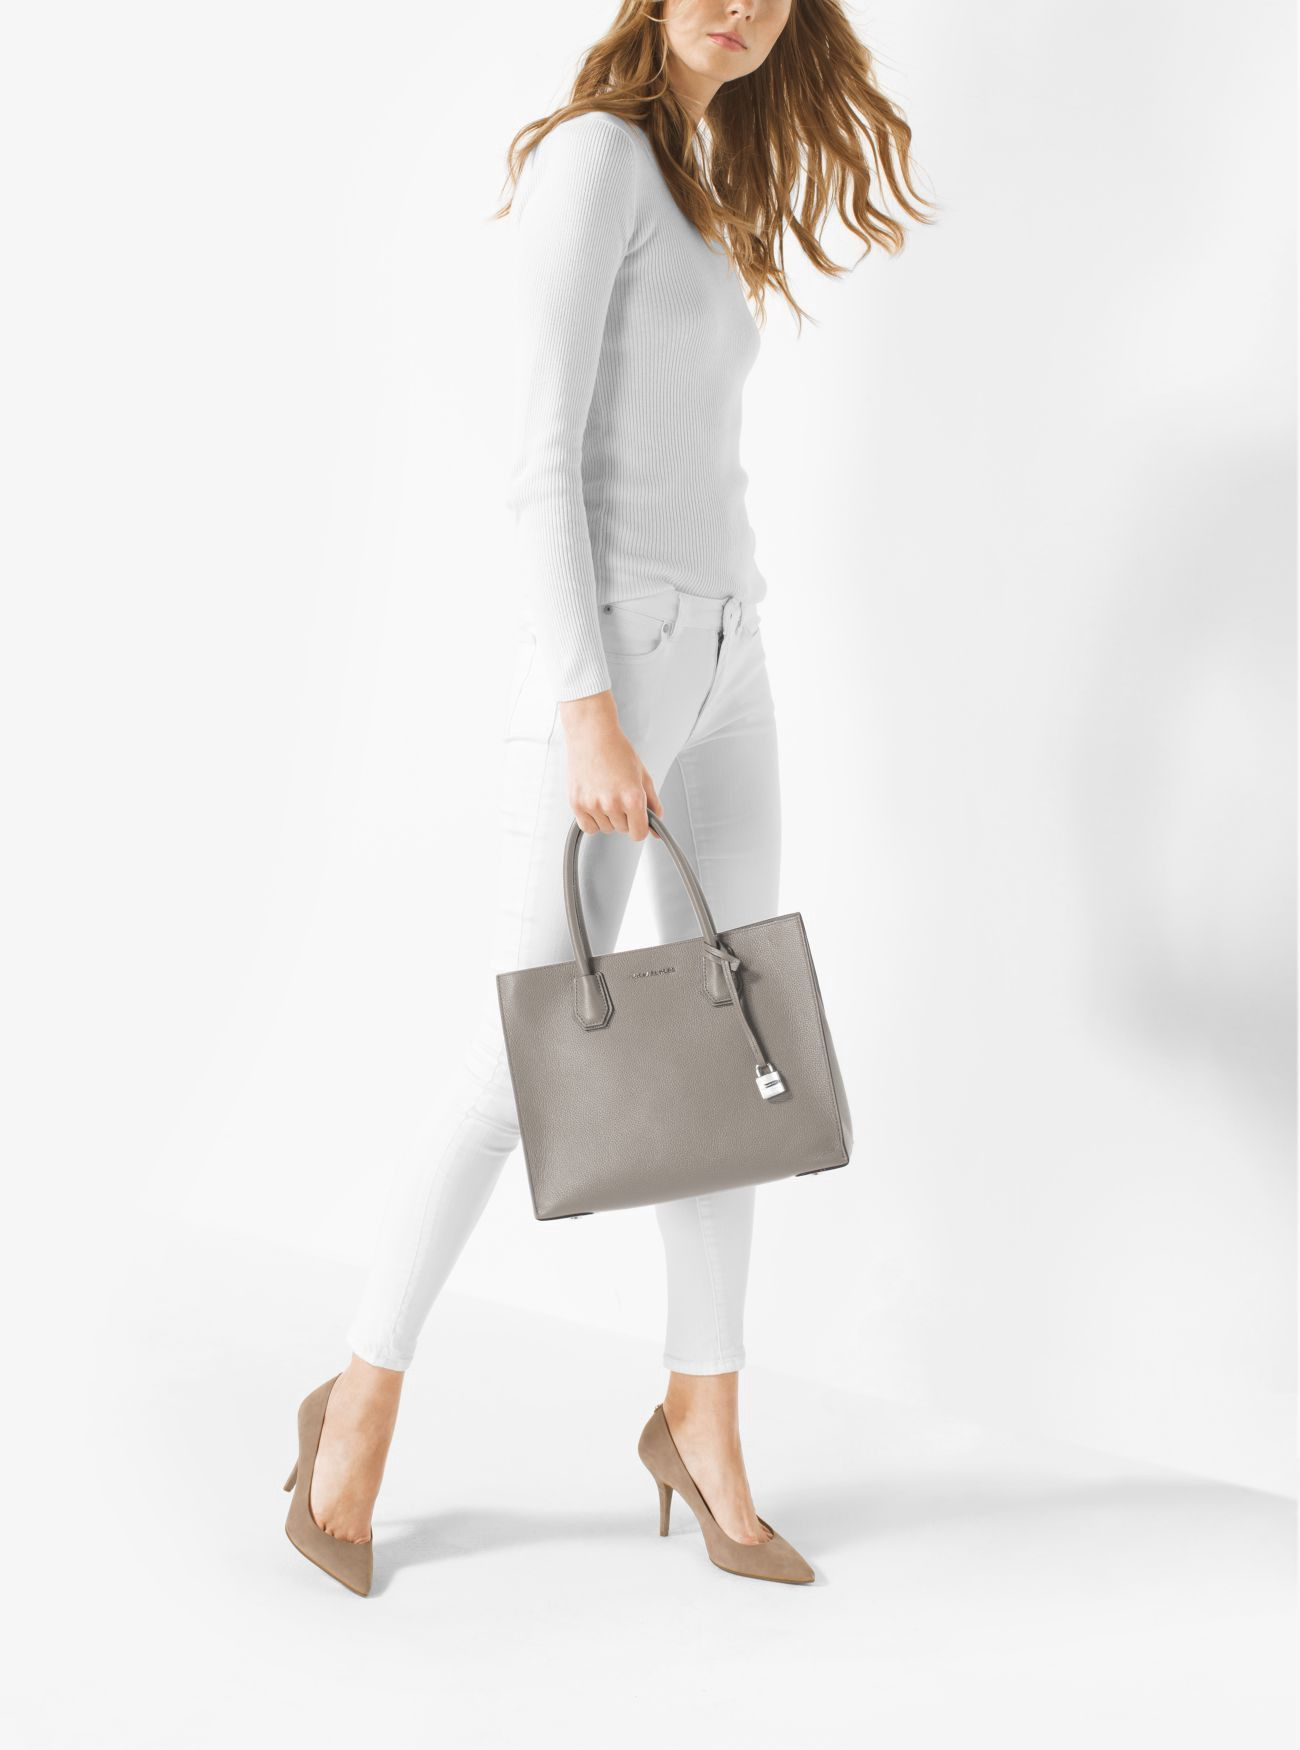 51d765ac295c MICHAEL KORS Mercer Large Leather Tote. #michaelkors #bags #canvas #tote # leather #lining #polyester #shoulder bags #hand bags #